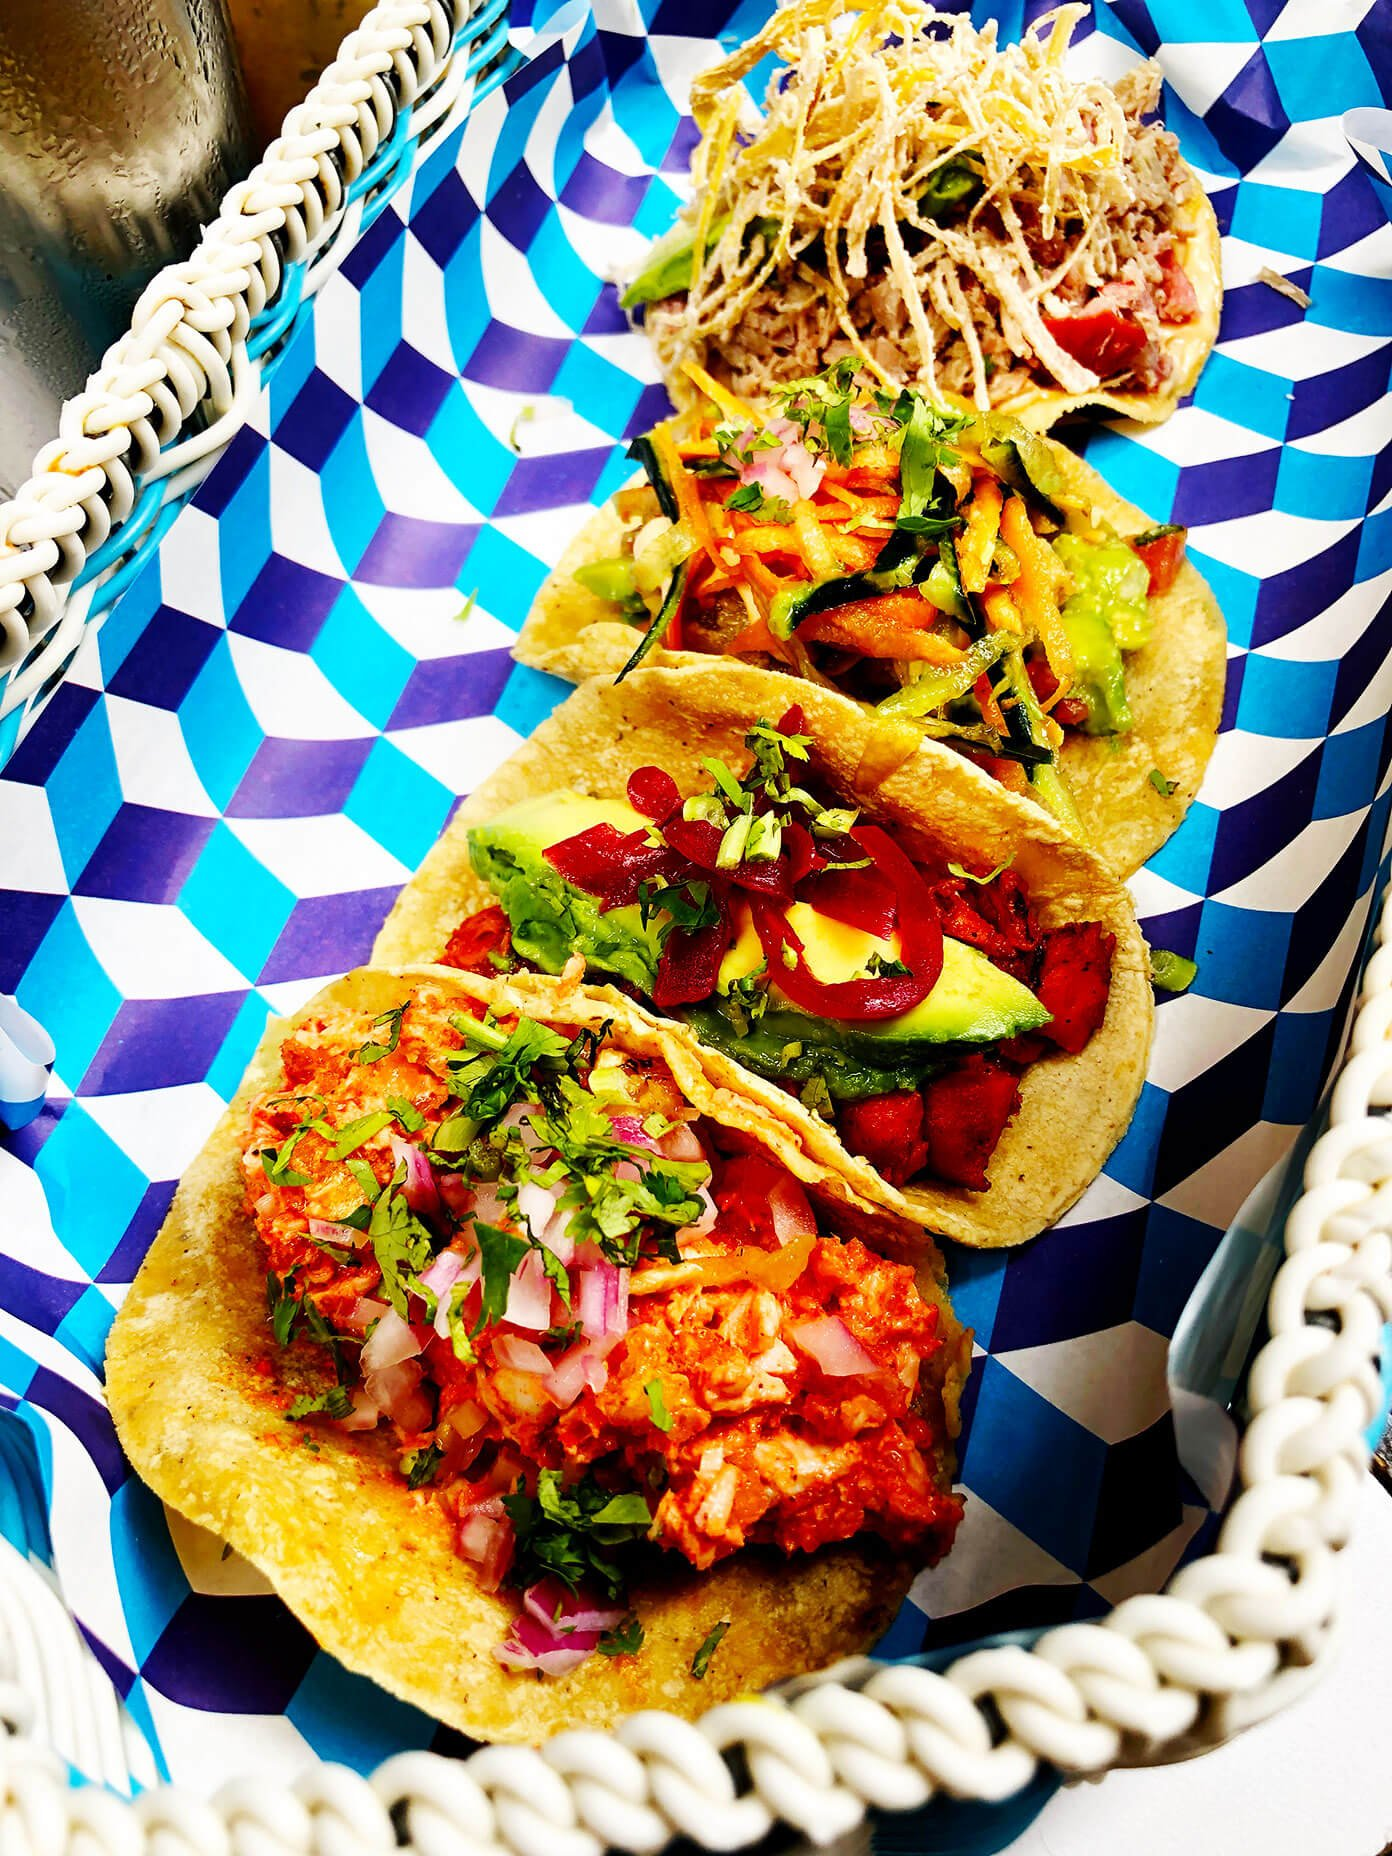 Fish Tacos at Tres Galeones | Ali's Guide To Mexico City